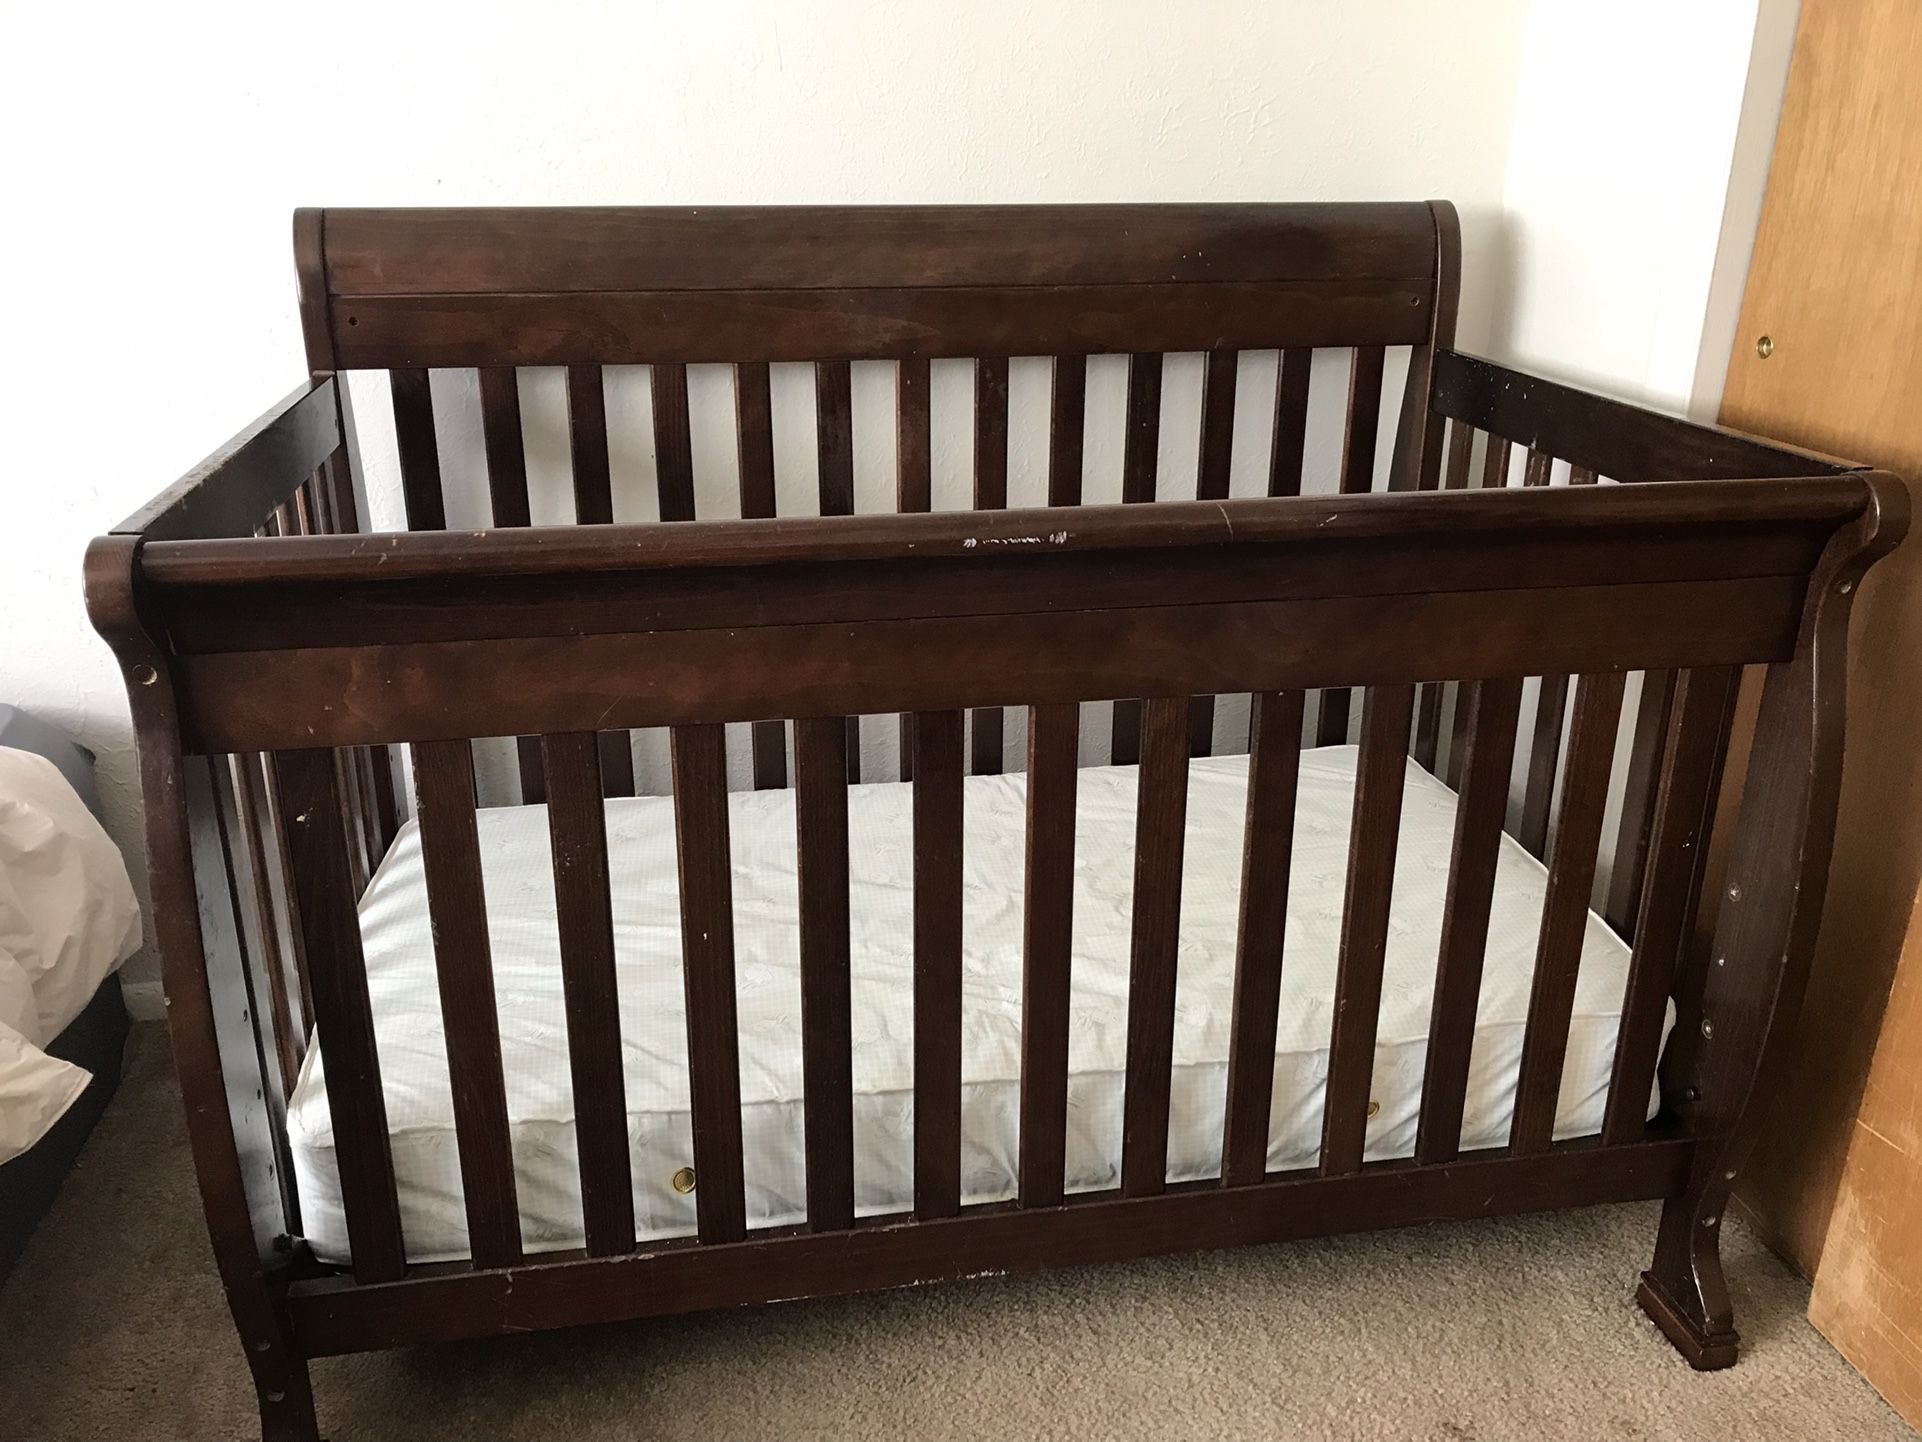 5 In 1 Crib / Toddler Bed Frame With Serta Mattress And Bumpers